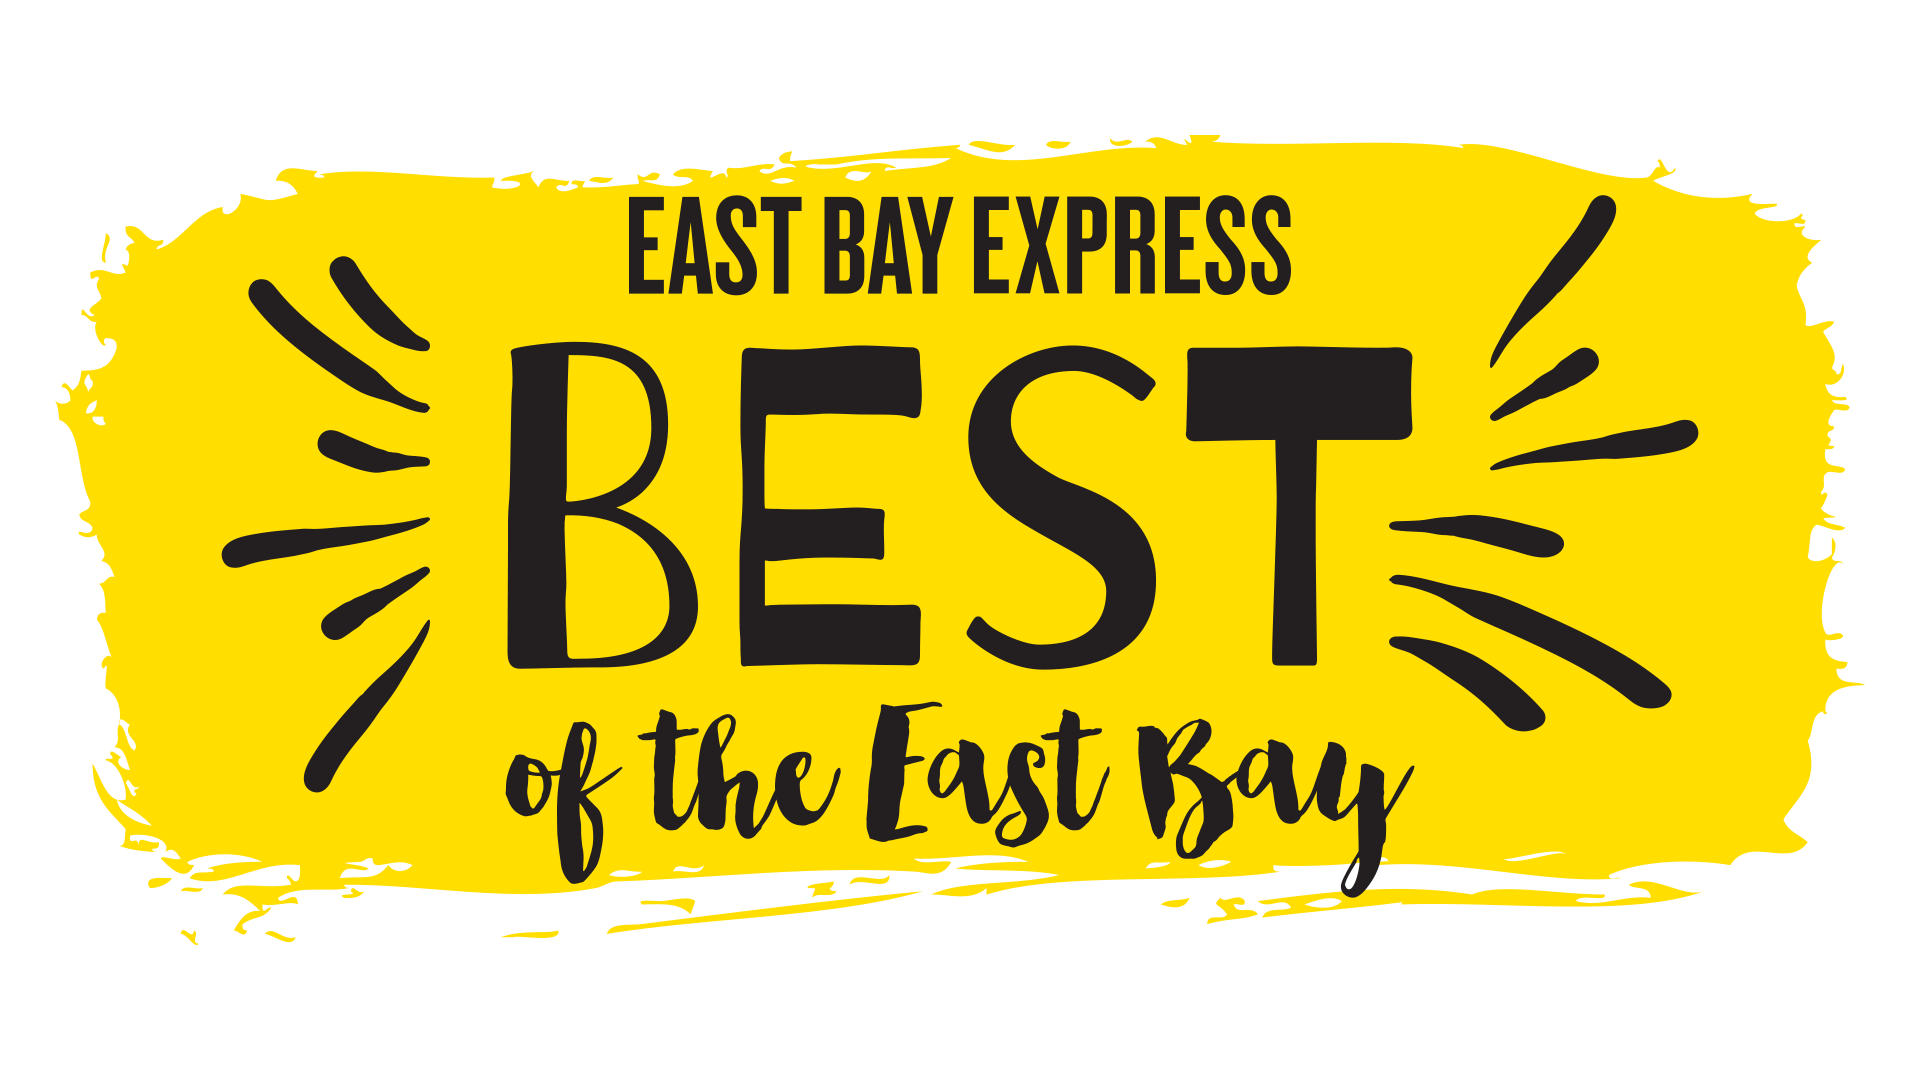 Best Of The East Bay Finalists Are Here! Find Out Who Got Nominated